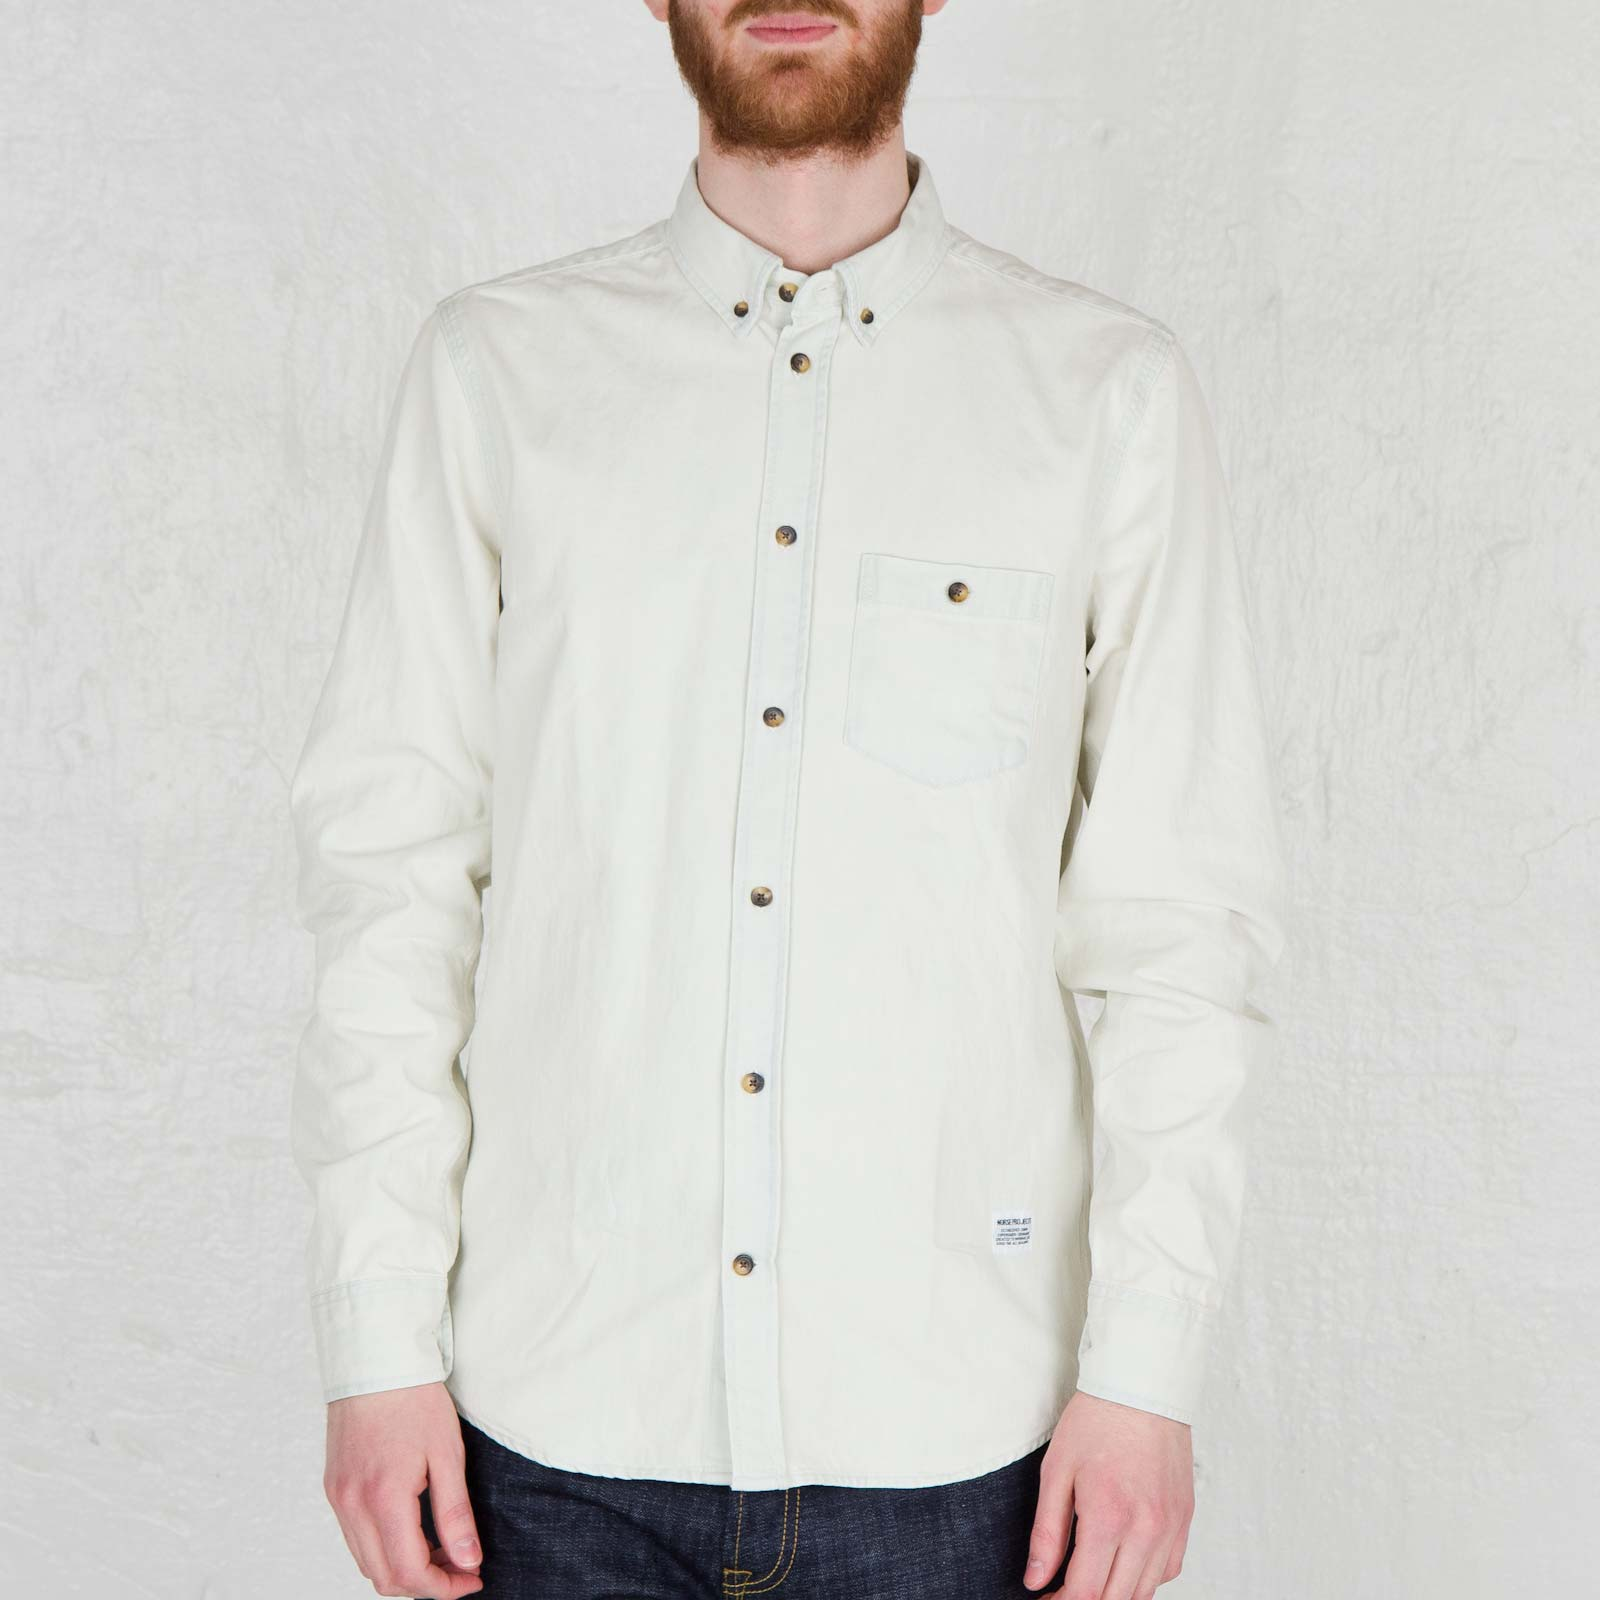 54f305a2df Norse Projects Anton Denim Shirt - N40-0089-7502 - Sneakersnstuff ...